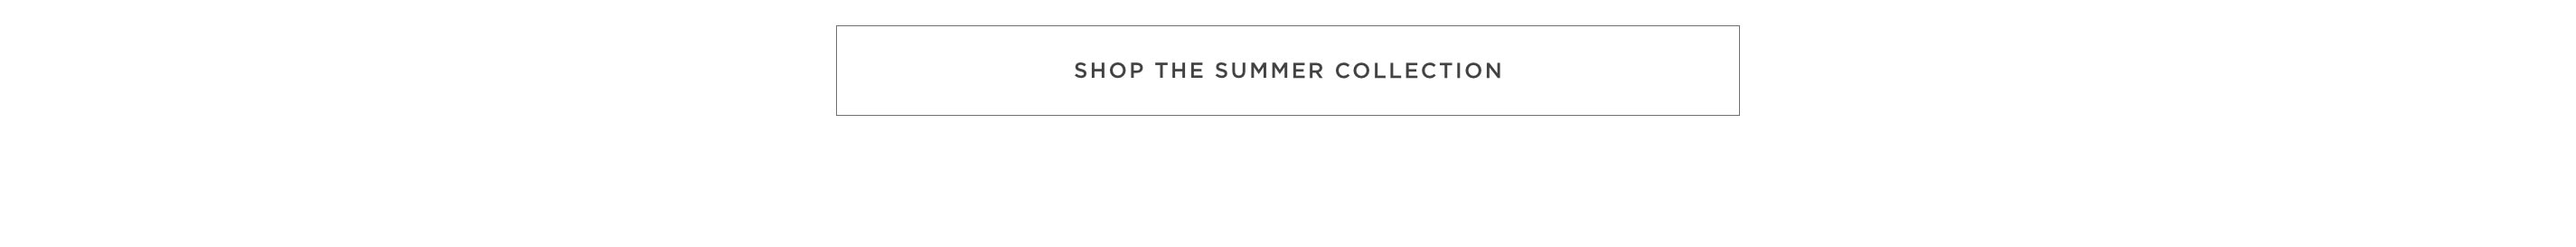 Shop the Summer Collection